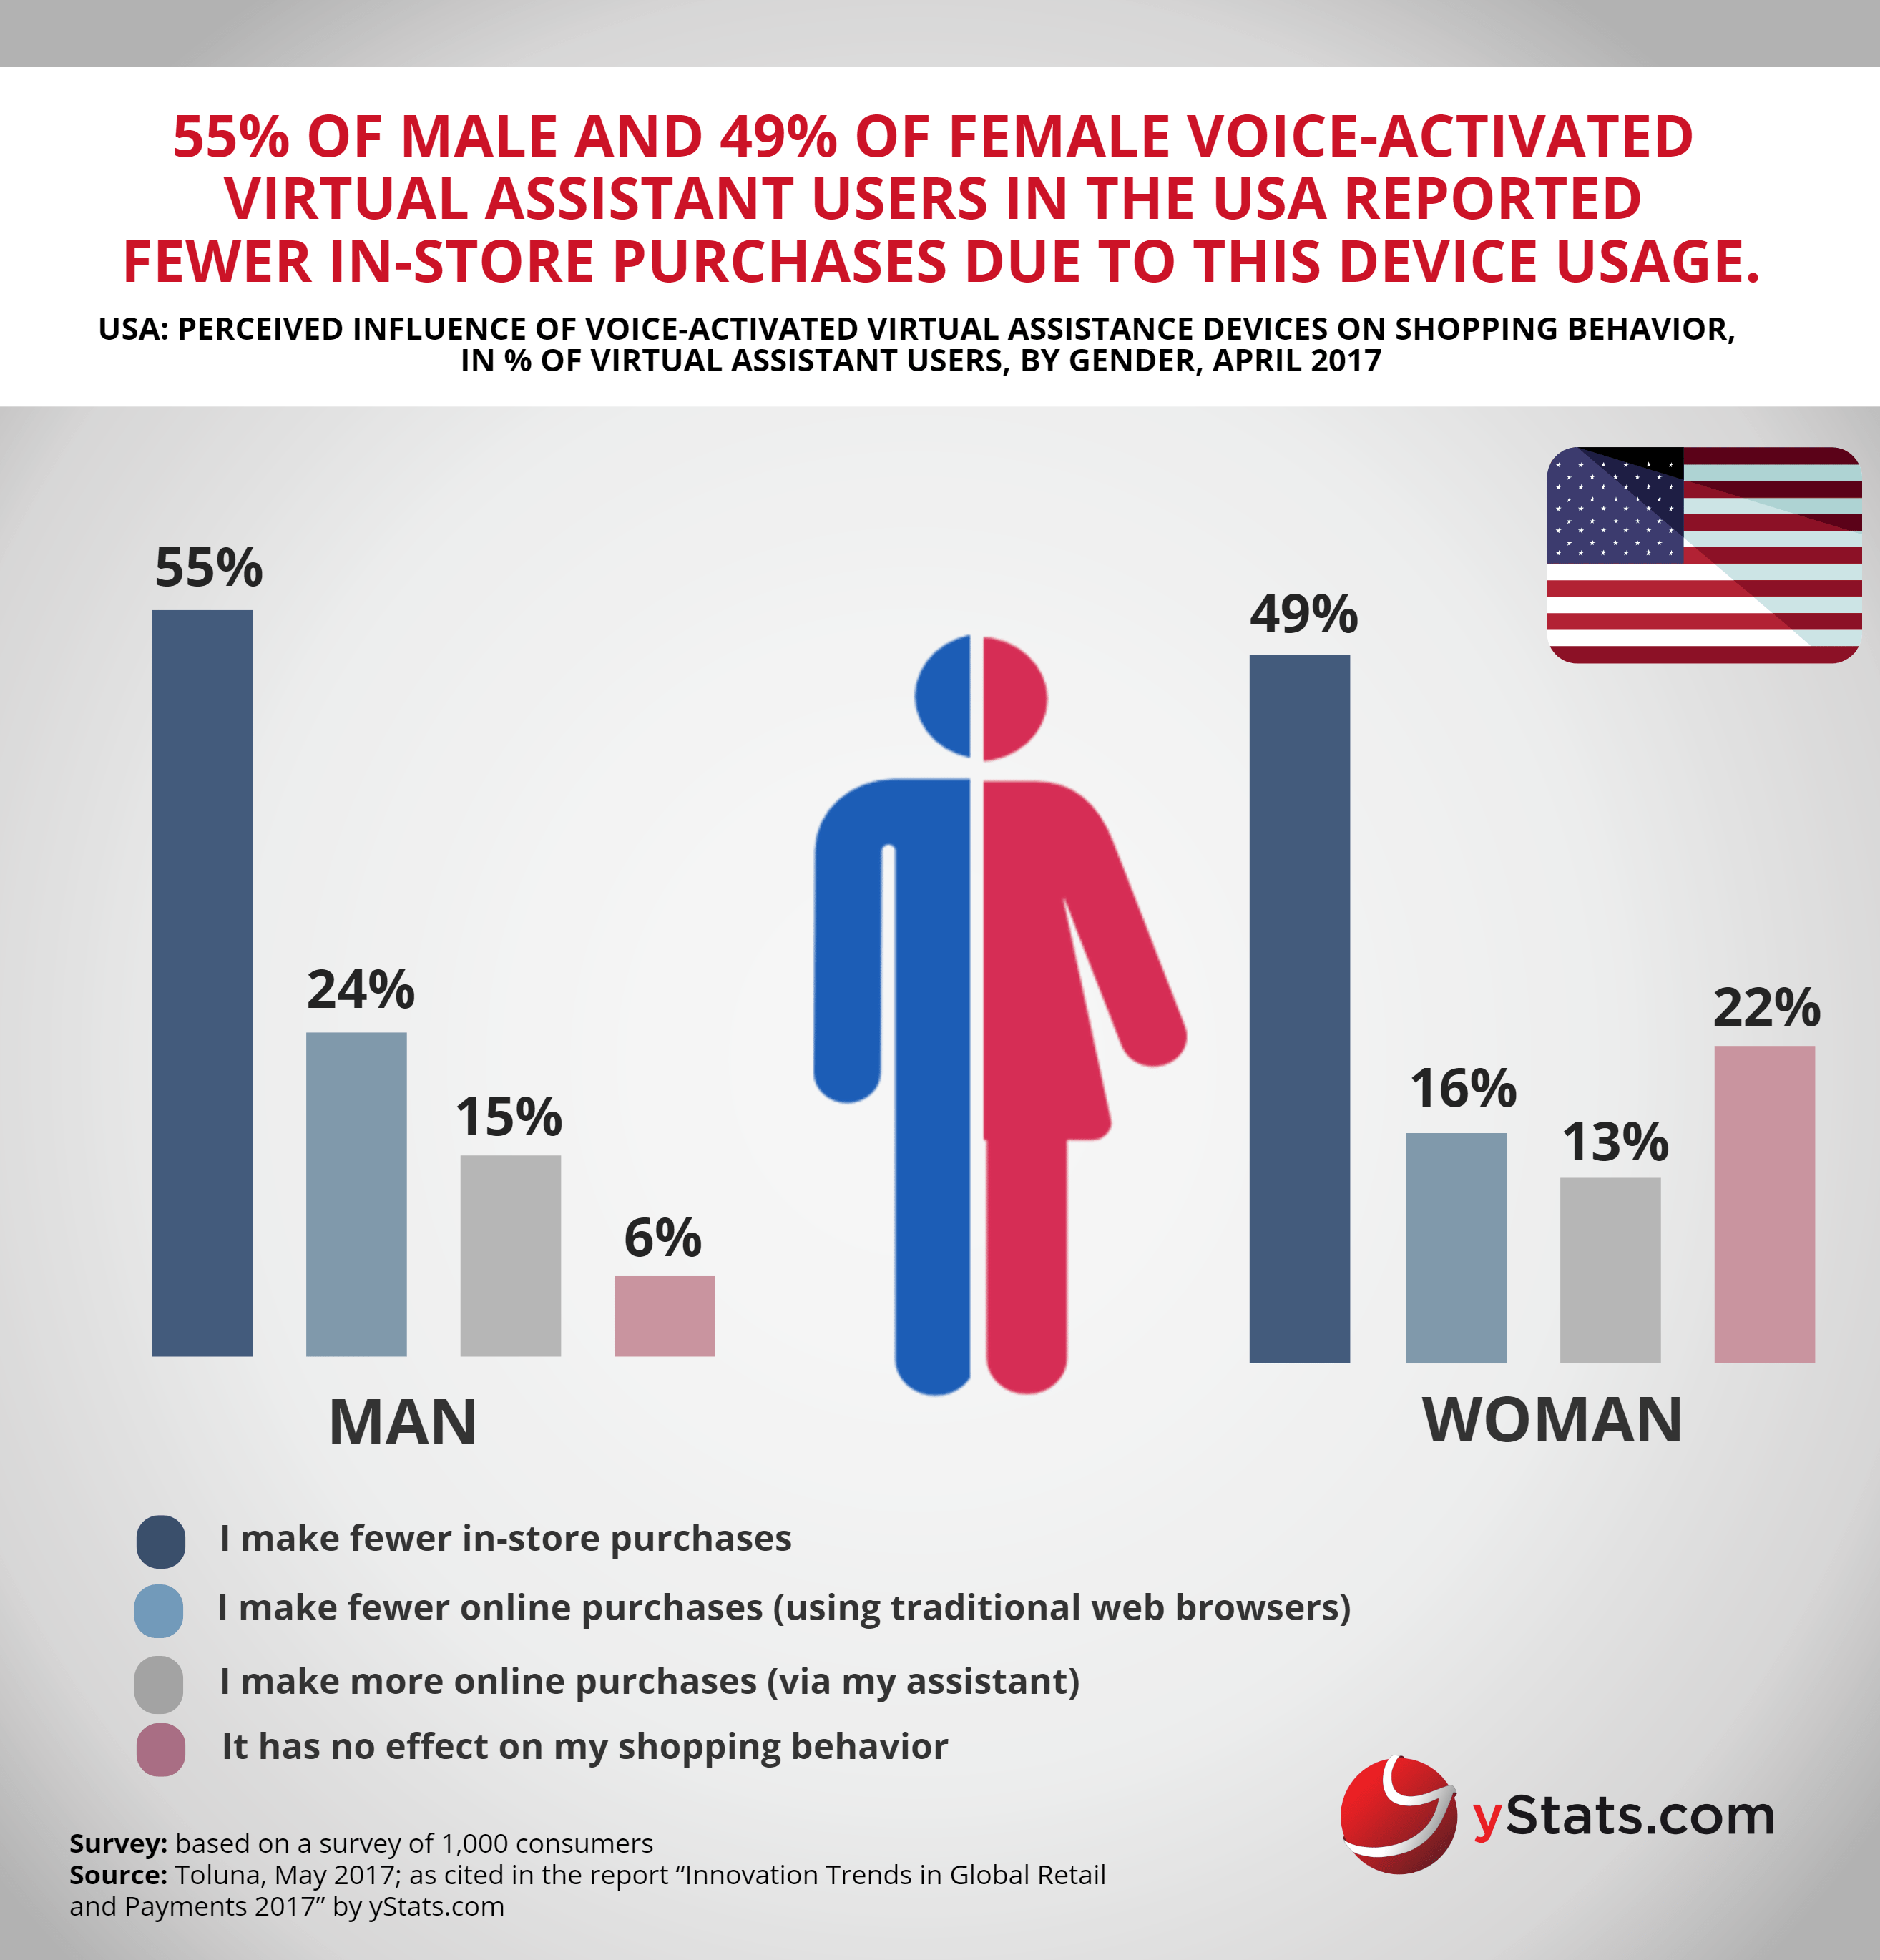 influence of voice-activated virtual assistance devices on online shopping USA